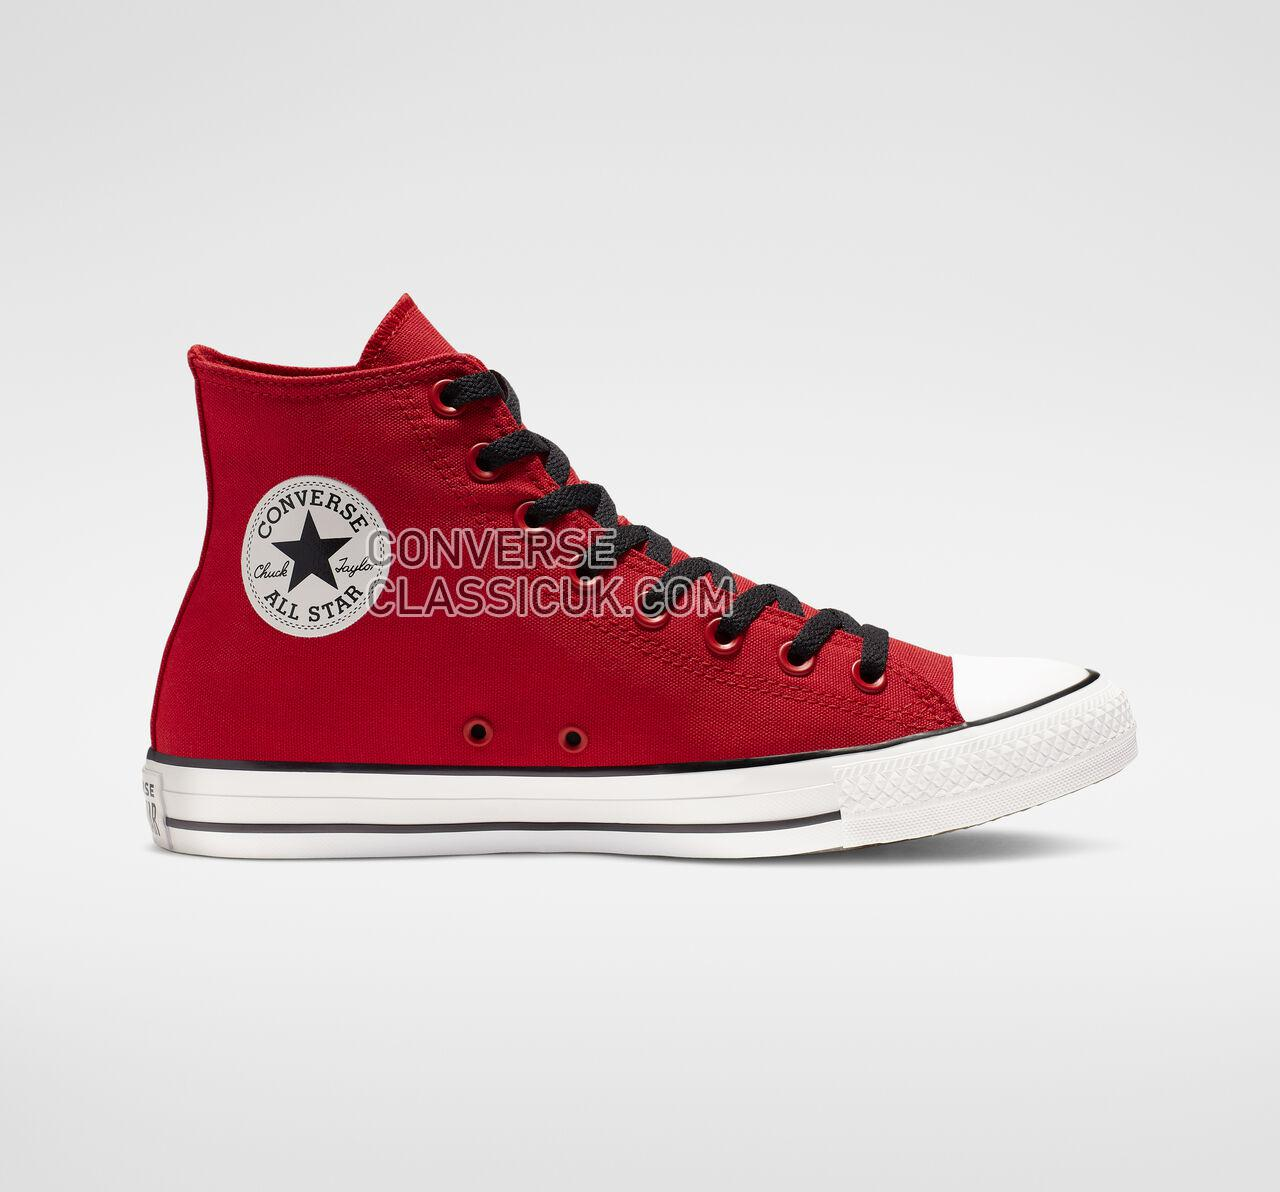 Converse Chuck Taylor All Star We Are Not Alone High Top Mens Womens Unisex 165467F Enamel Red/Black/White Shoes